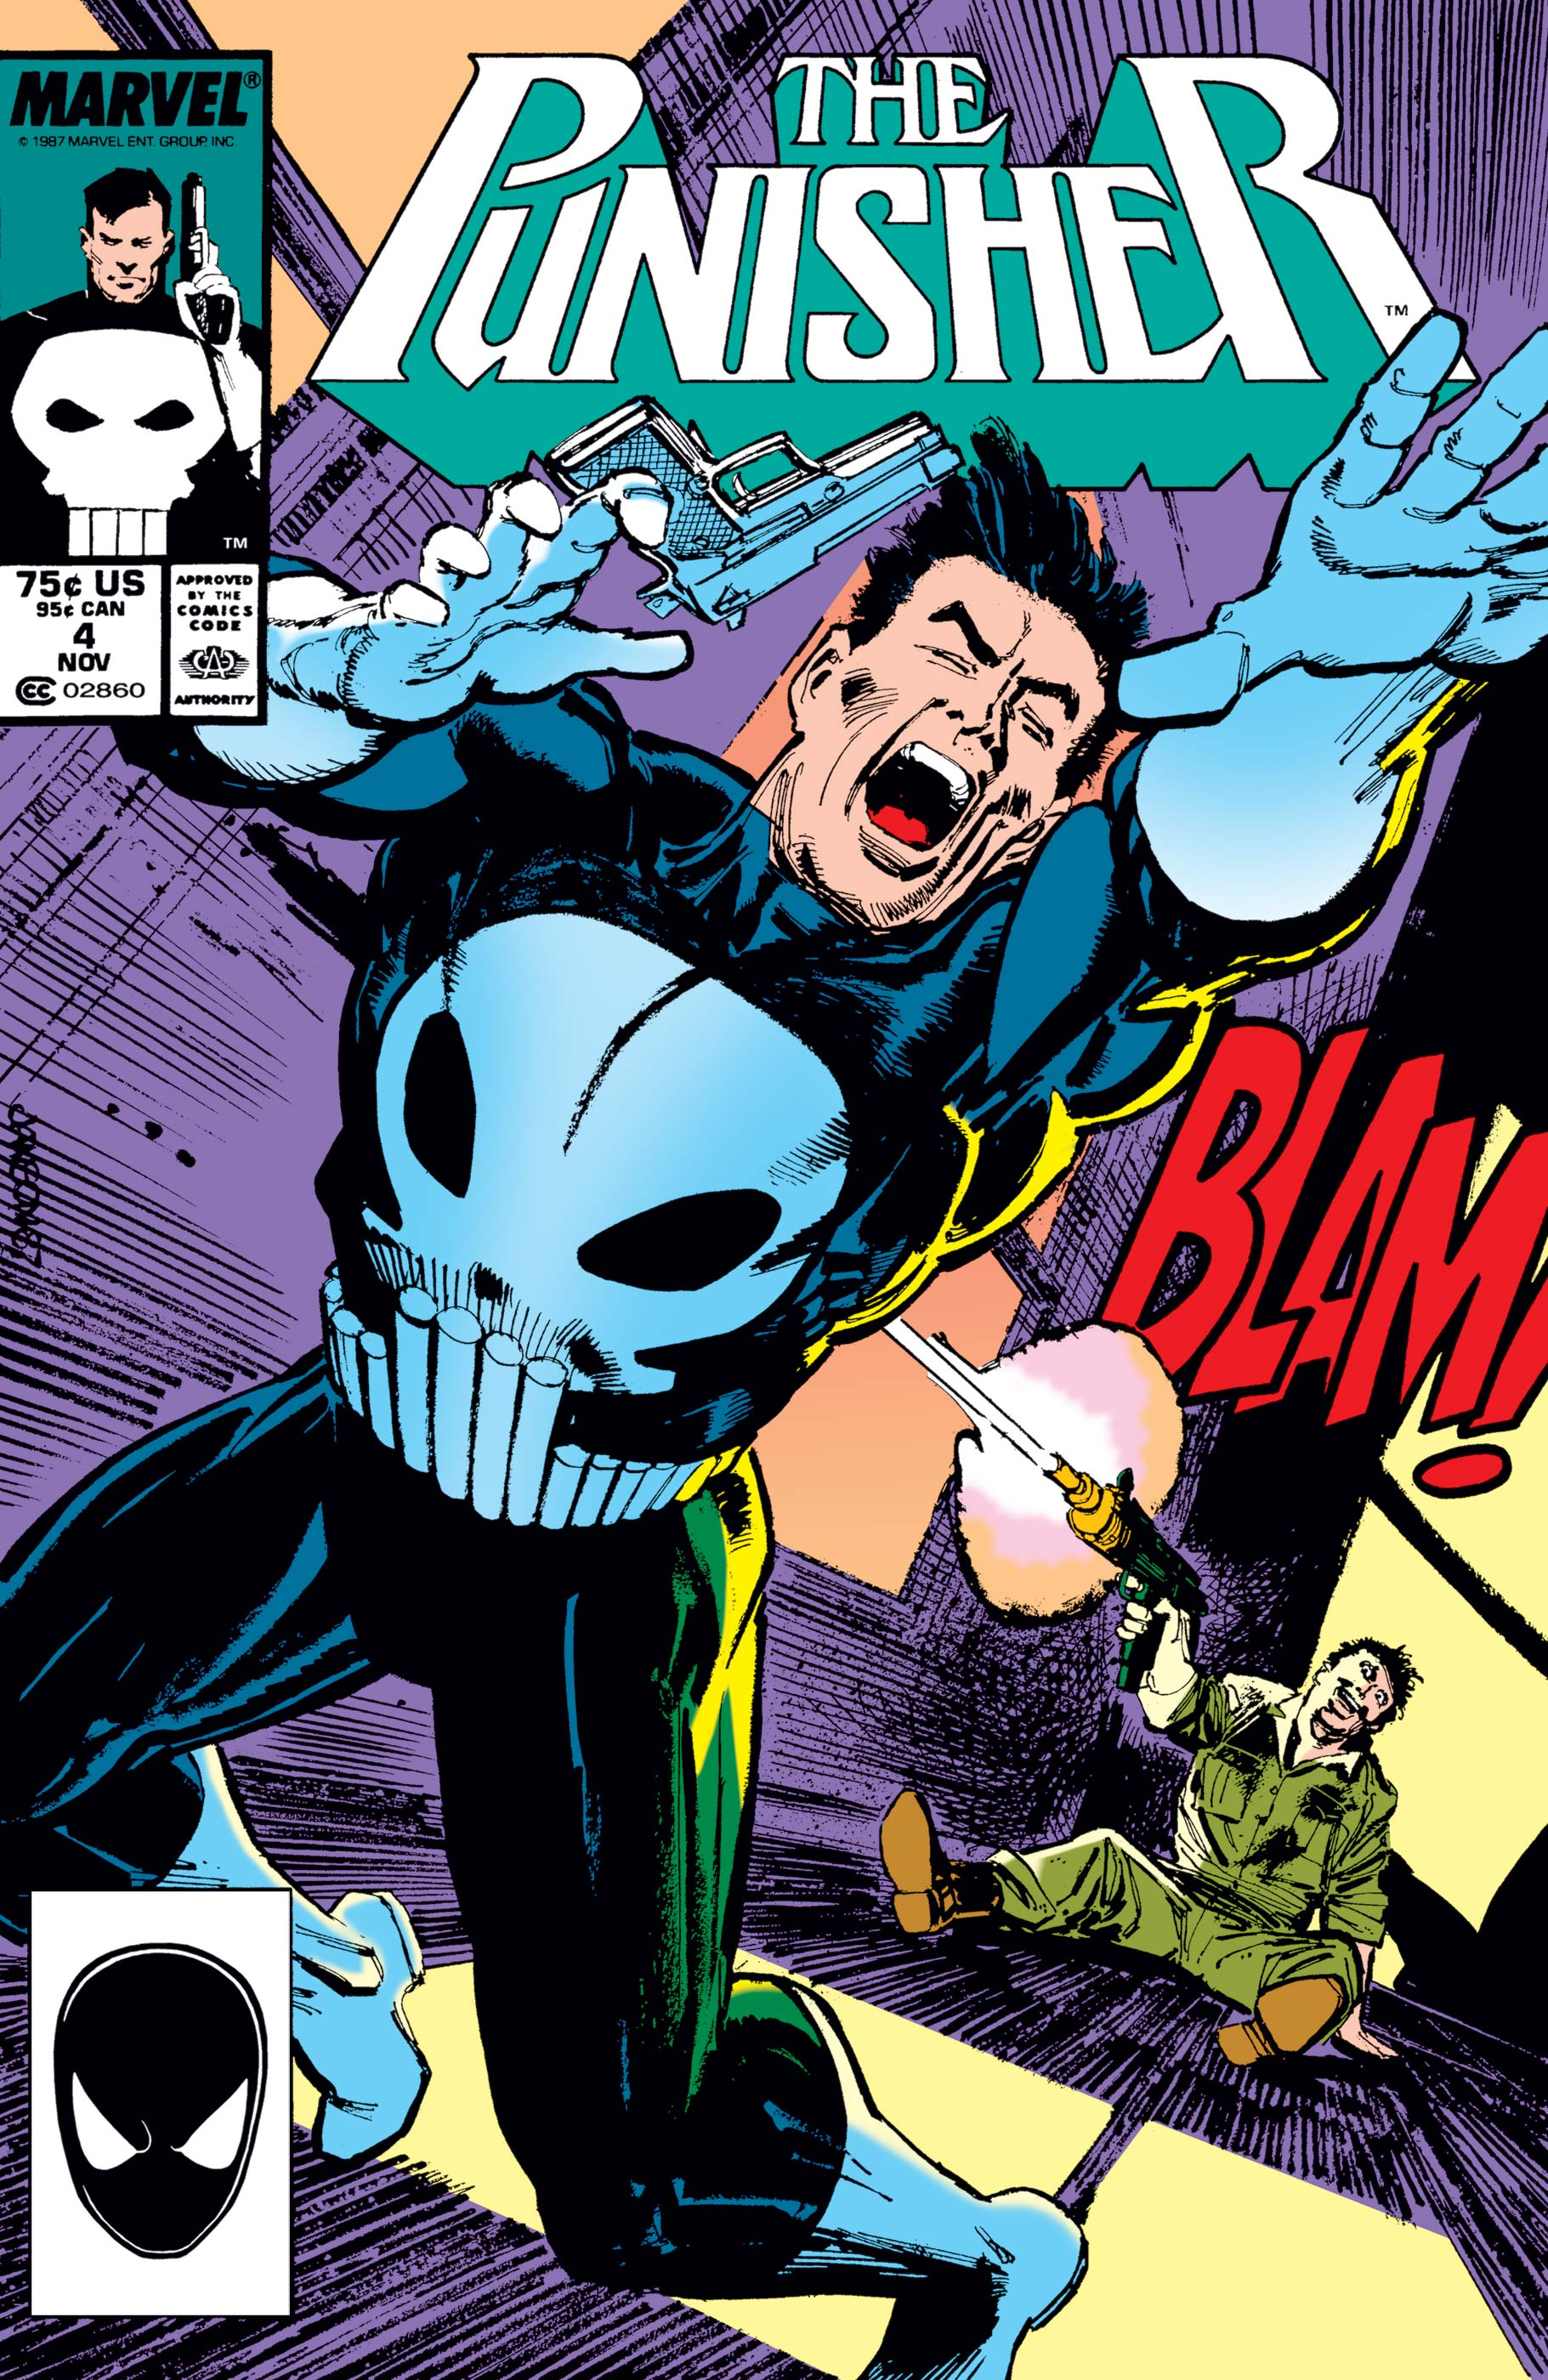 The Punisher (1987) #4